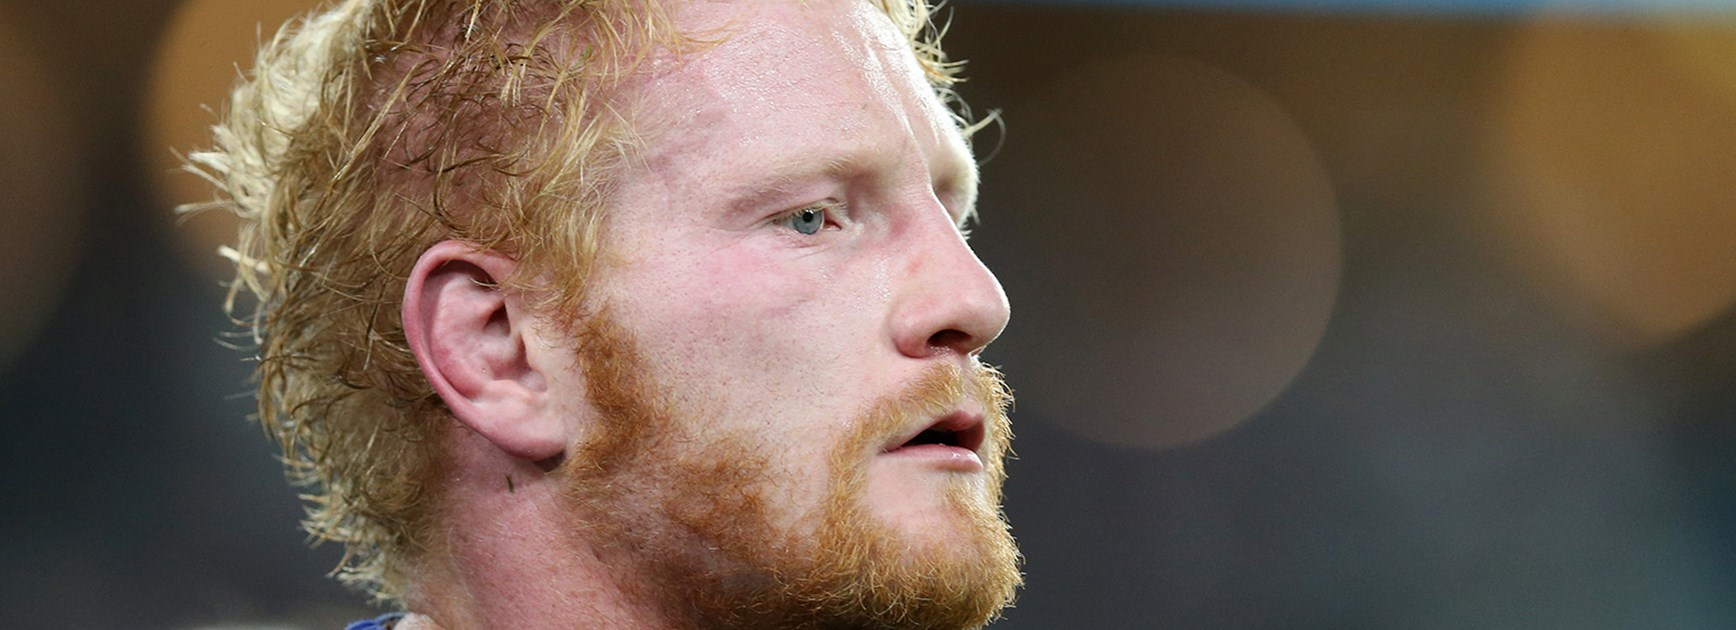 James Graham left the field with a concussion against the Roosters in Round 10.